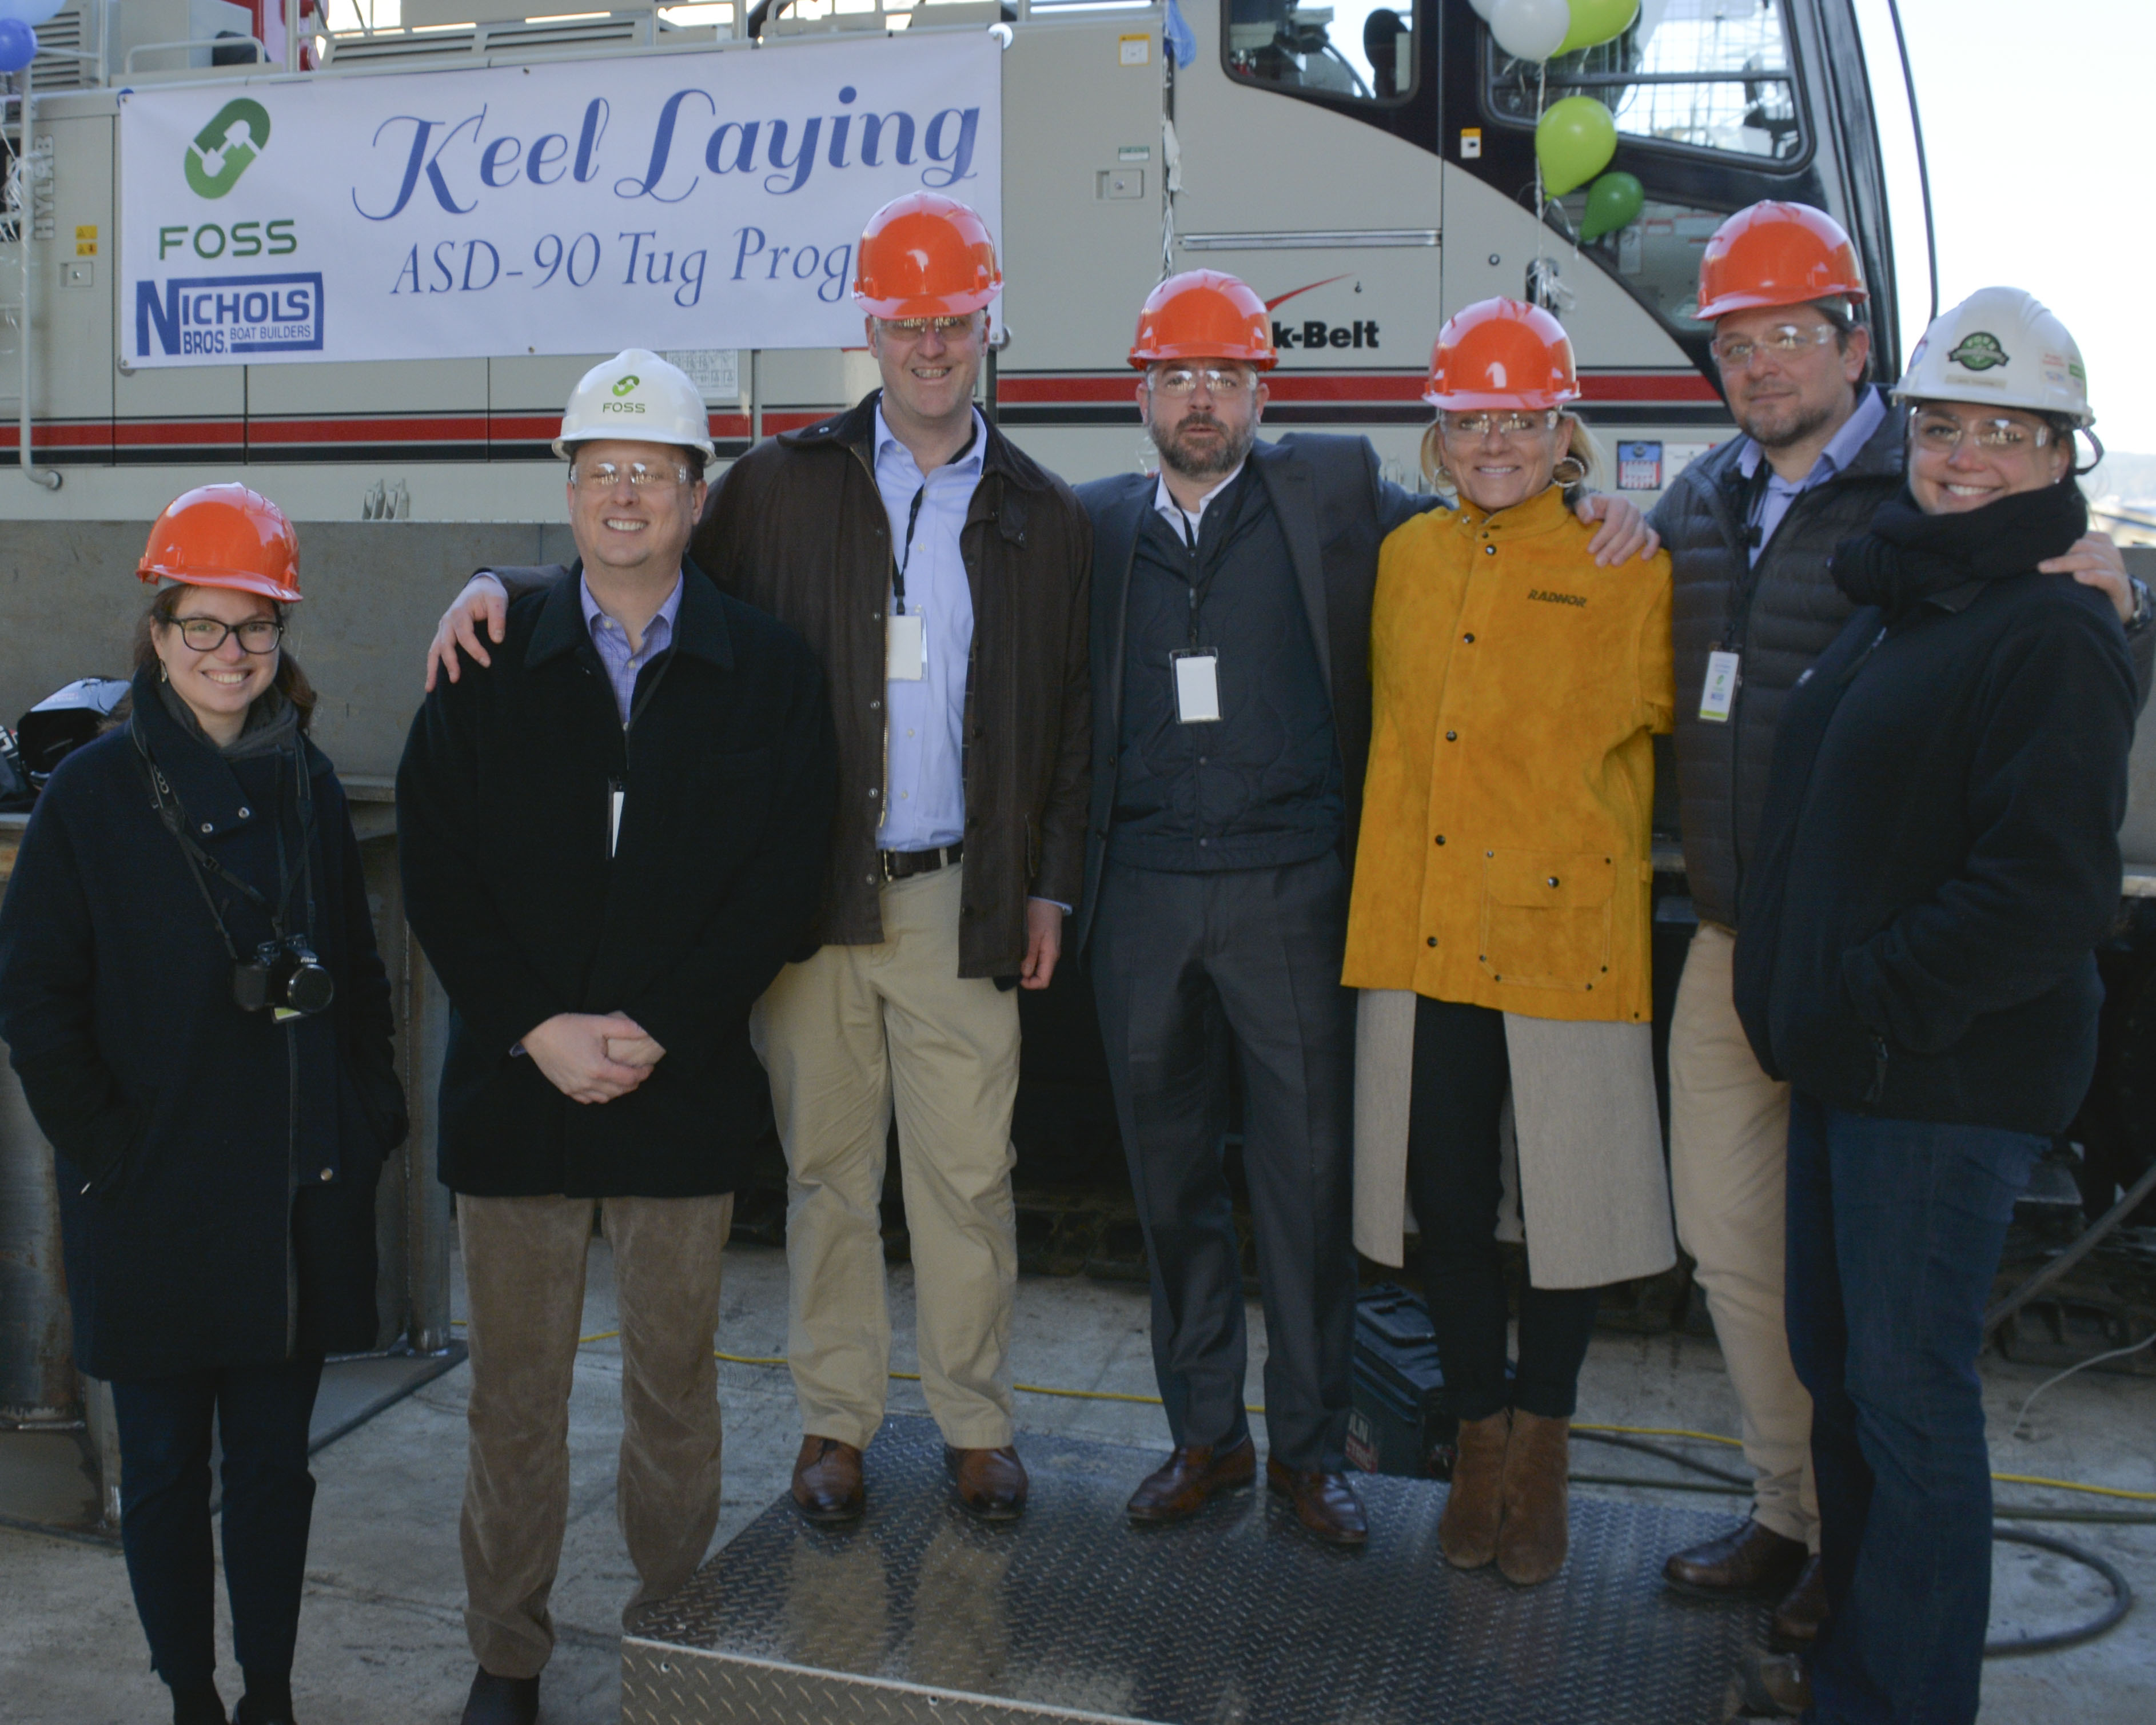 From left to right: Eve Lori, Foss Operations Assistant; Grant Johnson, Foss VP HSQE; Will Roberts, Foss COO; Tim Engle, Saltchuk President; Nicole Engle, Saltchuk Principal Shareholder; David Dumont, Foss Senior Director of Project Services and Engineering; Janic Trepanier, Foss ASD 90 Project Manager.